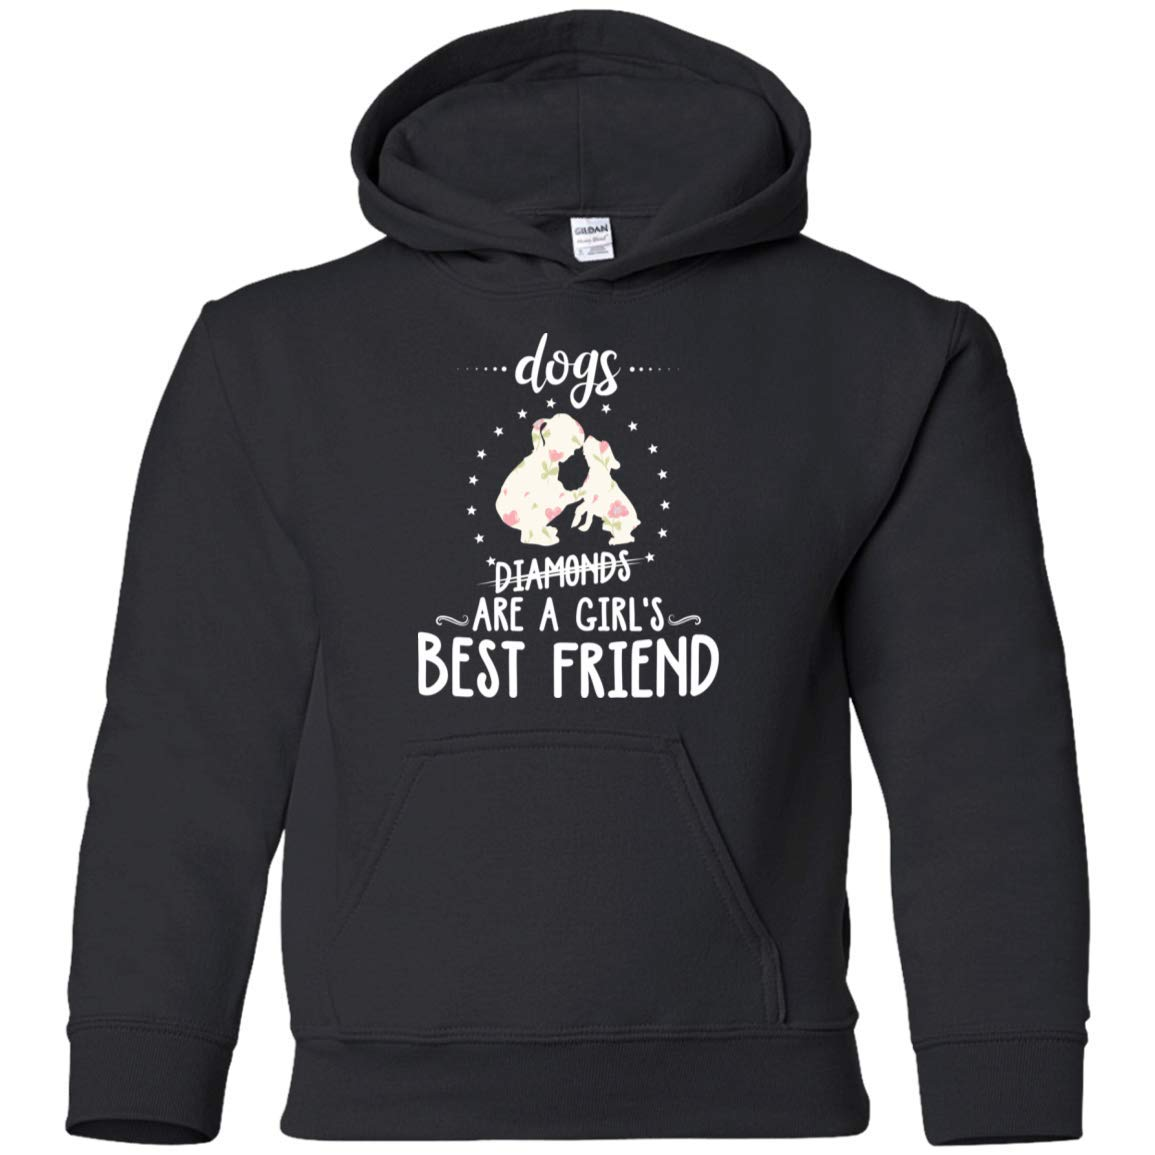 Teely Shop Little Boys Dogs are A Girls Best Friend G185B Gildan Youth Pullover Hoodie